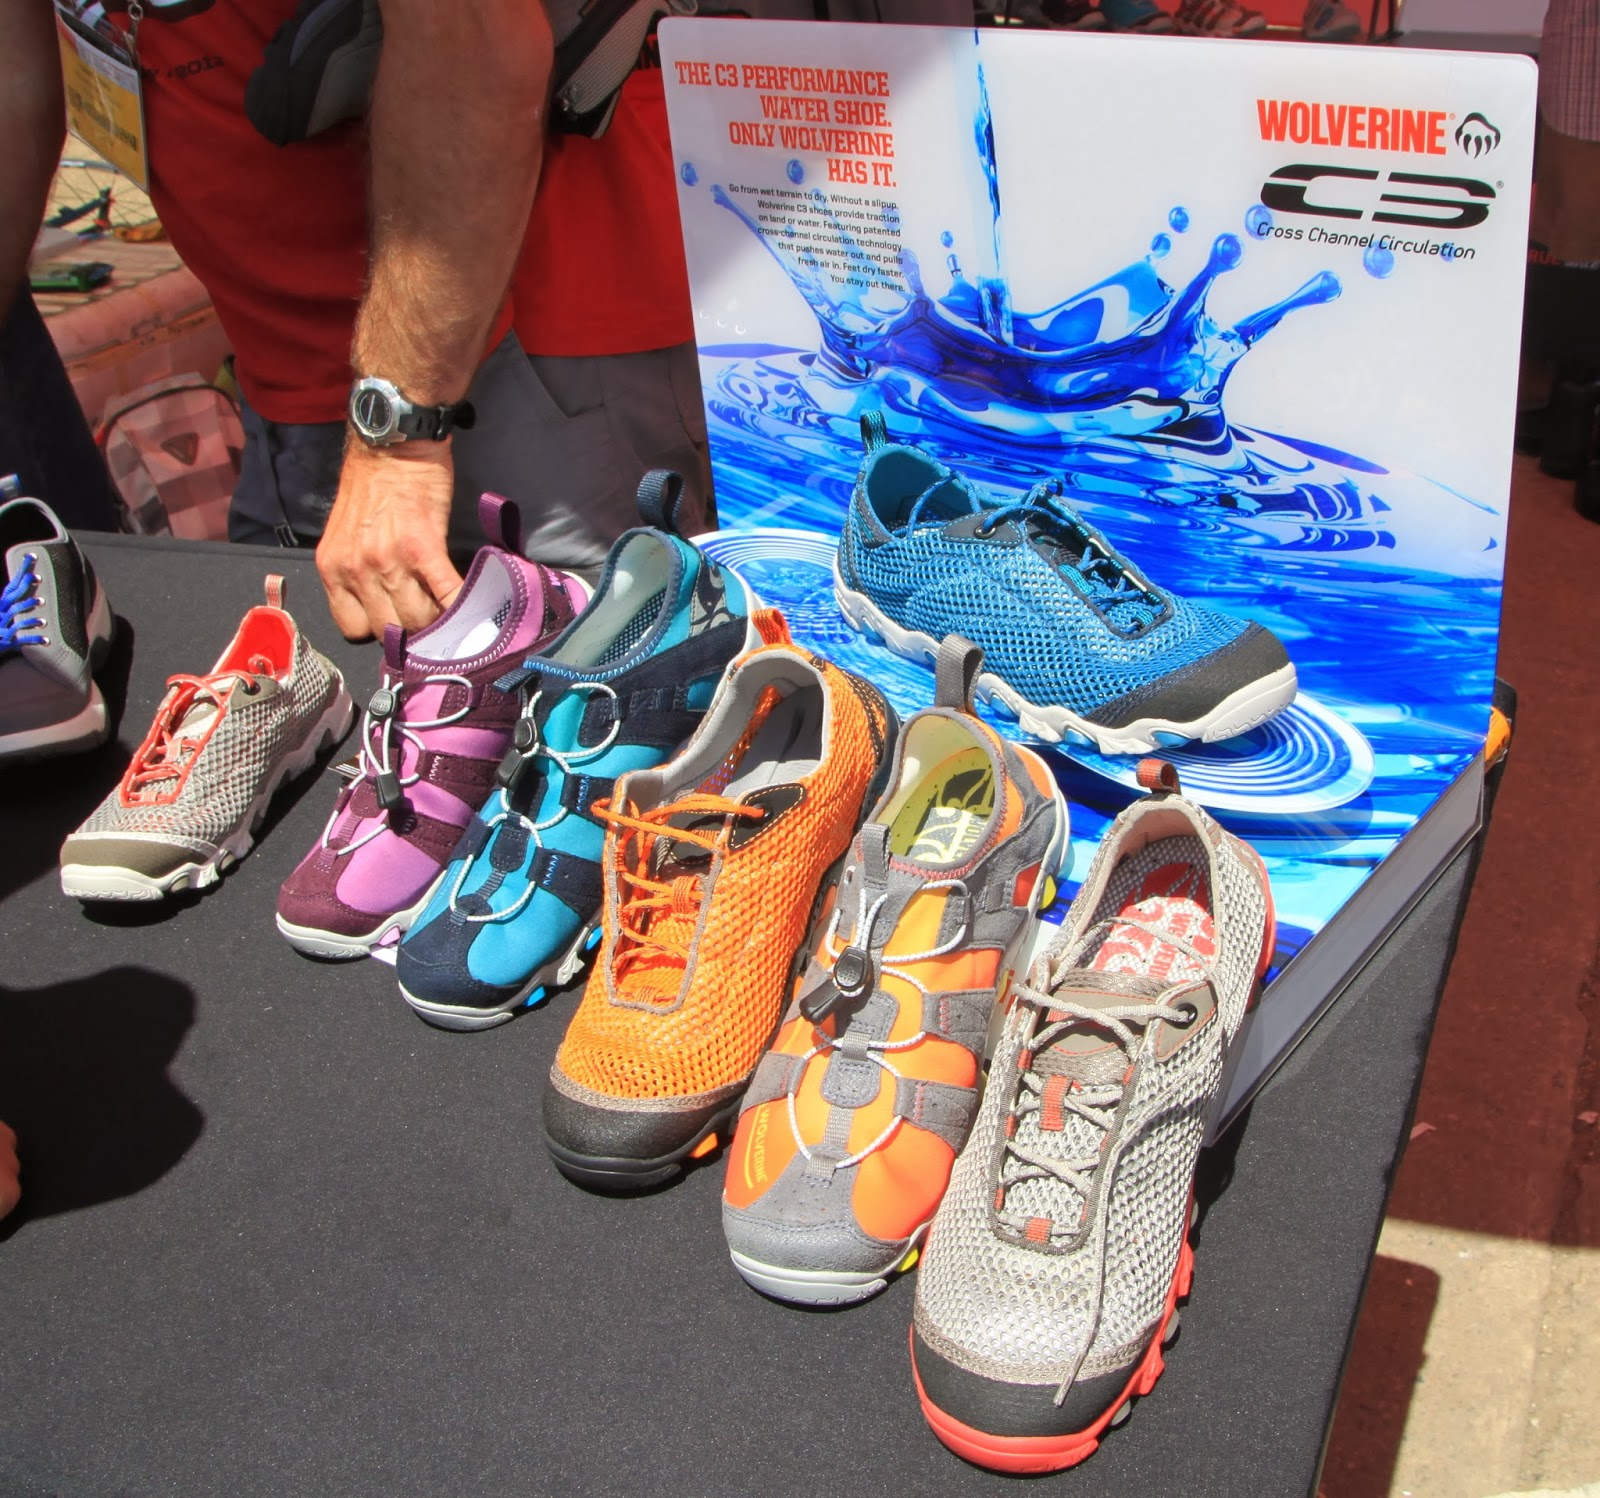 434be92634 Demo Day-display of new water + multi-sport kicks with Cross Channel  Circulation®-l-r=Creek Bed (unlined w/ quick dry breathable mesh upper,  recessed laces ...